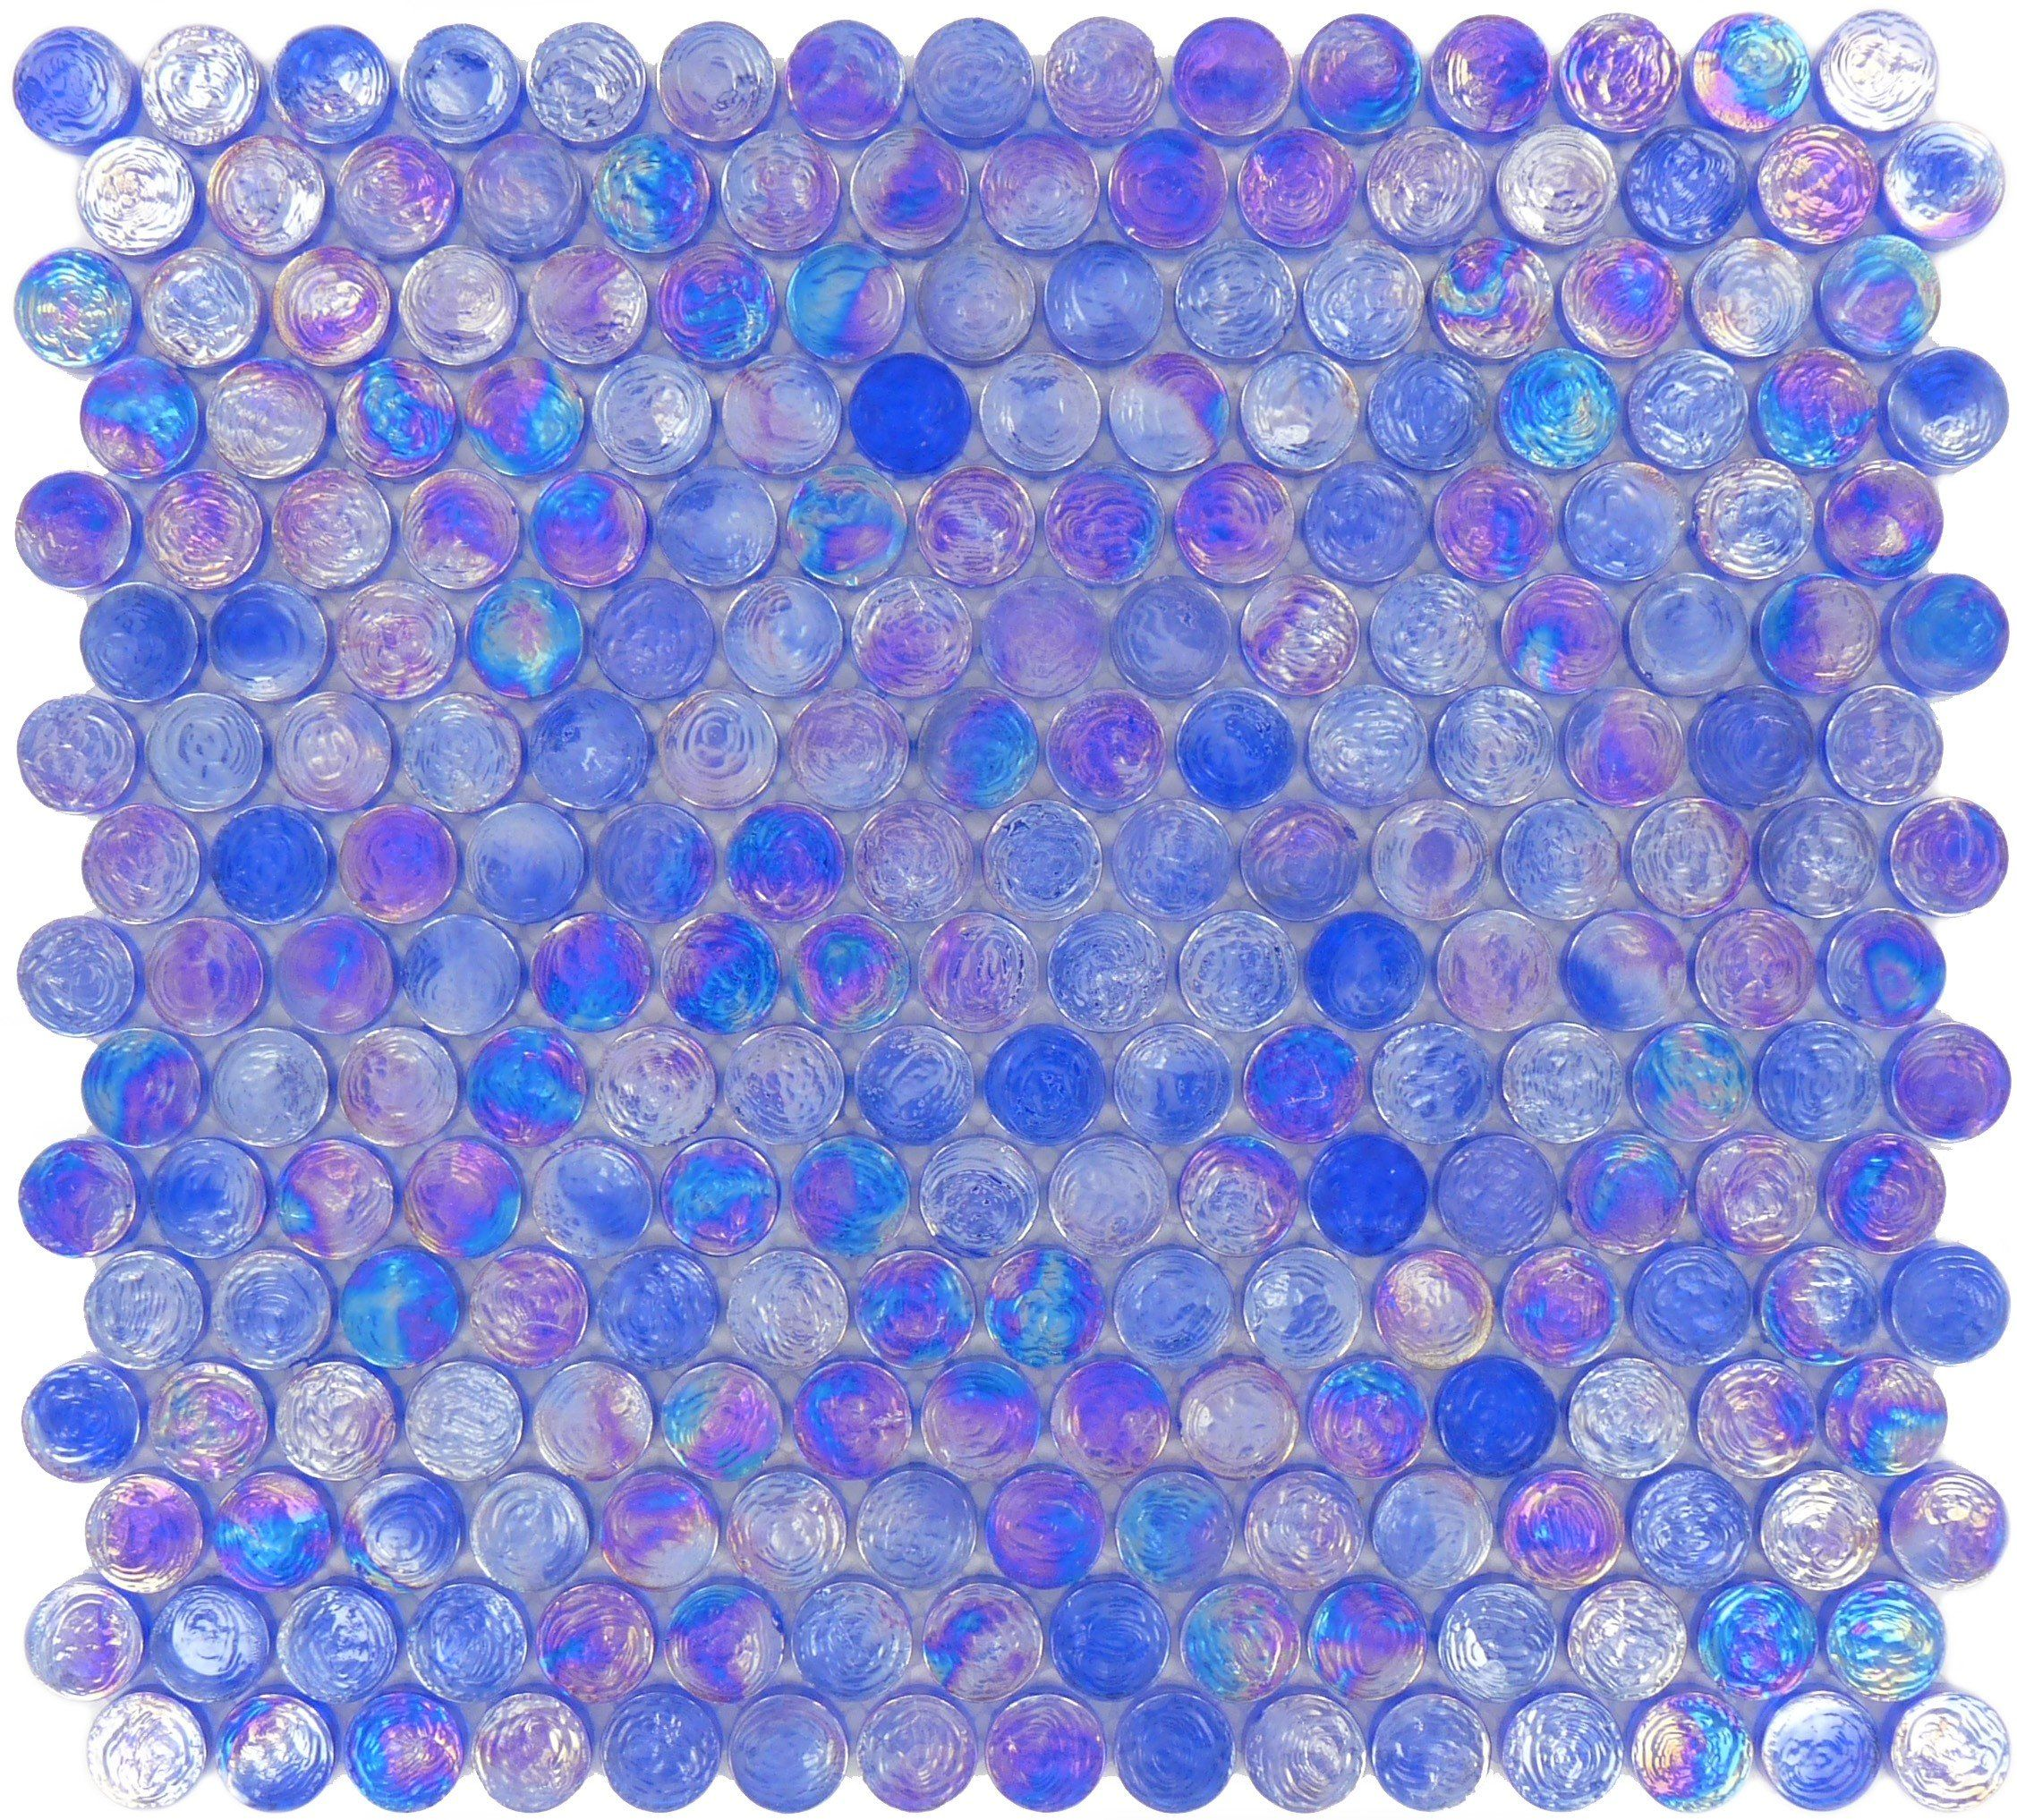 Circles Blue Glass Penny Circle Tile Glossy Iridescent Imc20 07 Iridescent Tile Penny Round Tiles Tiles